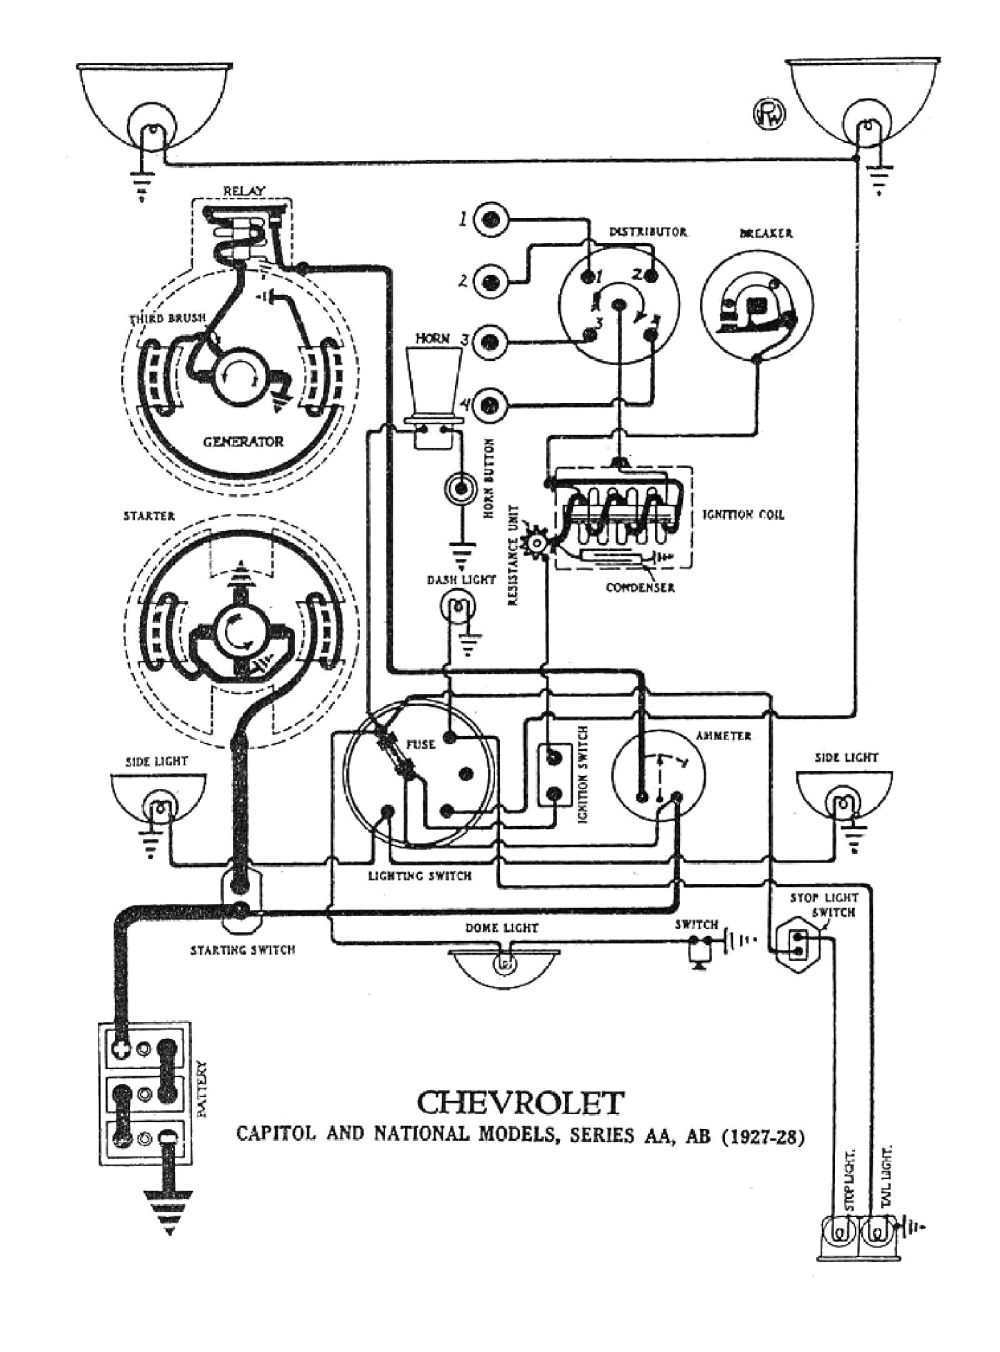 medium resolution of chevy wiring diagrams free gm wiring diagrams for dummies 1927 capitol national models 1928